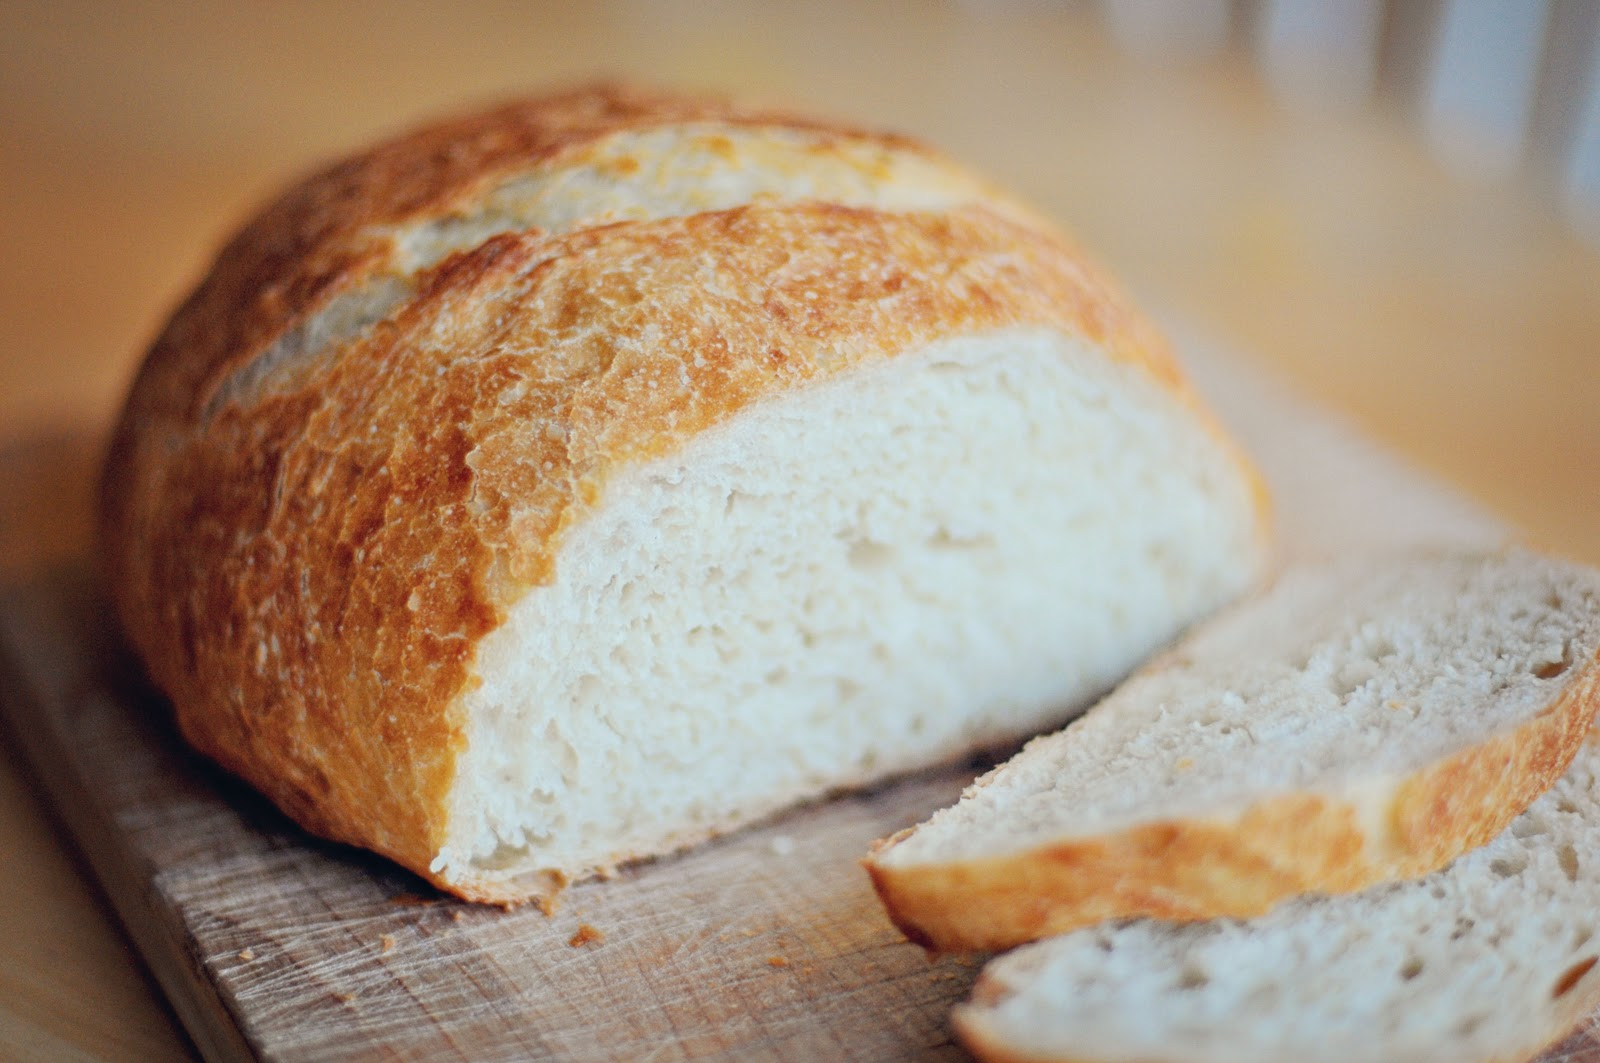 Barefoot and Baking: Quick Artisan Bread